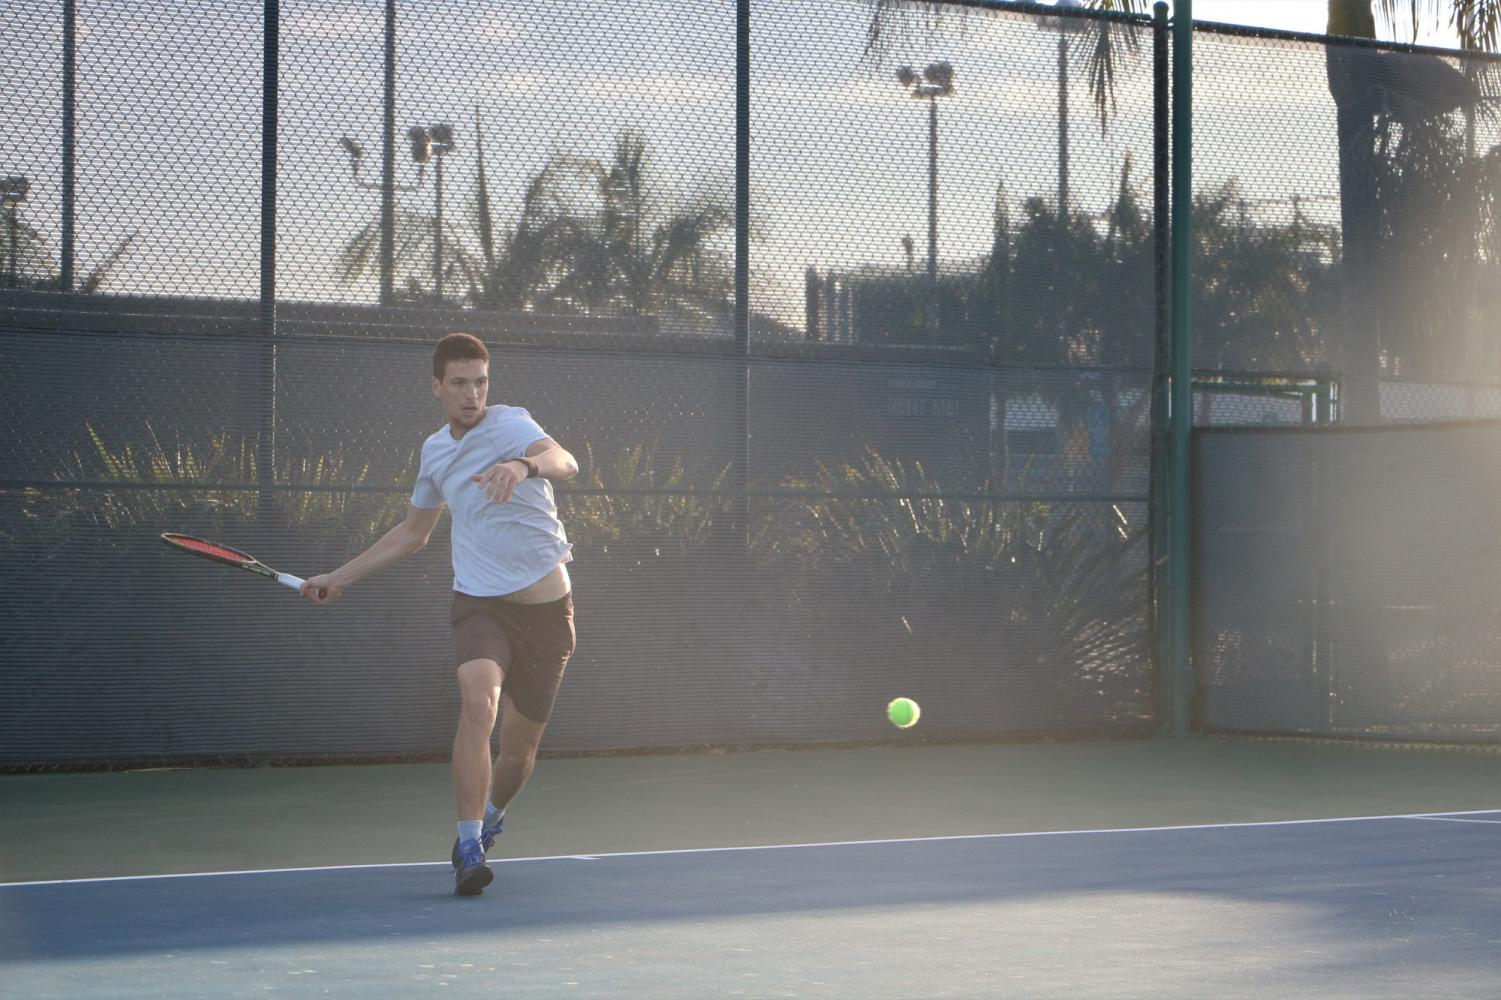 Alex Prokopchuk has steady eyes on the tennis ball, while his hands are in full motion to swing. Cerritos College won the matches overall 9-0.